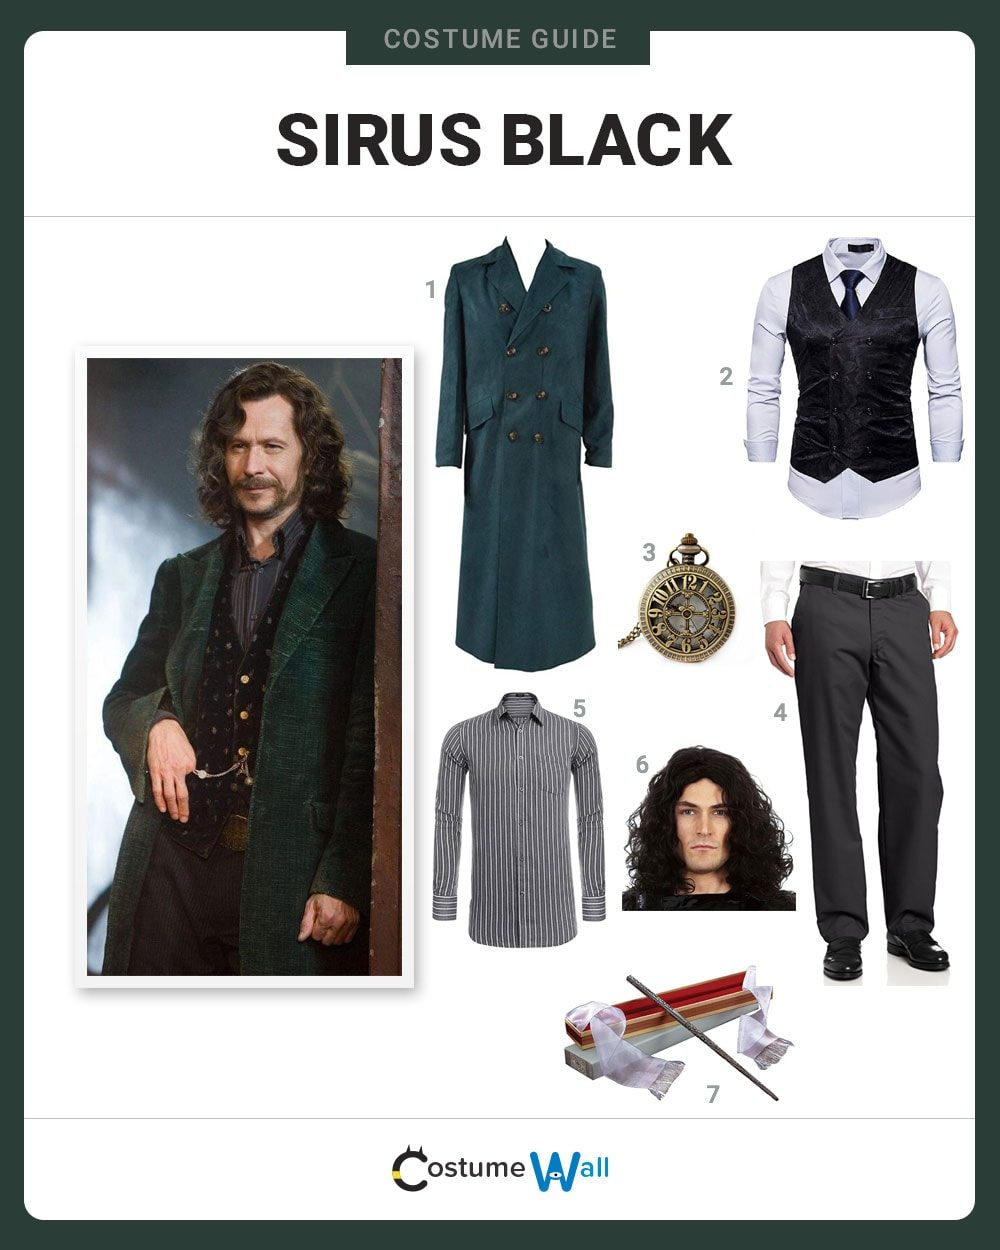 Sirius Black Costume Guide